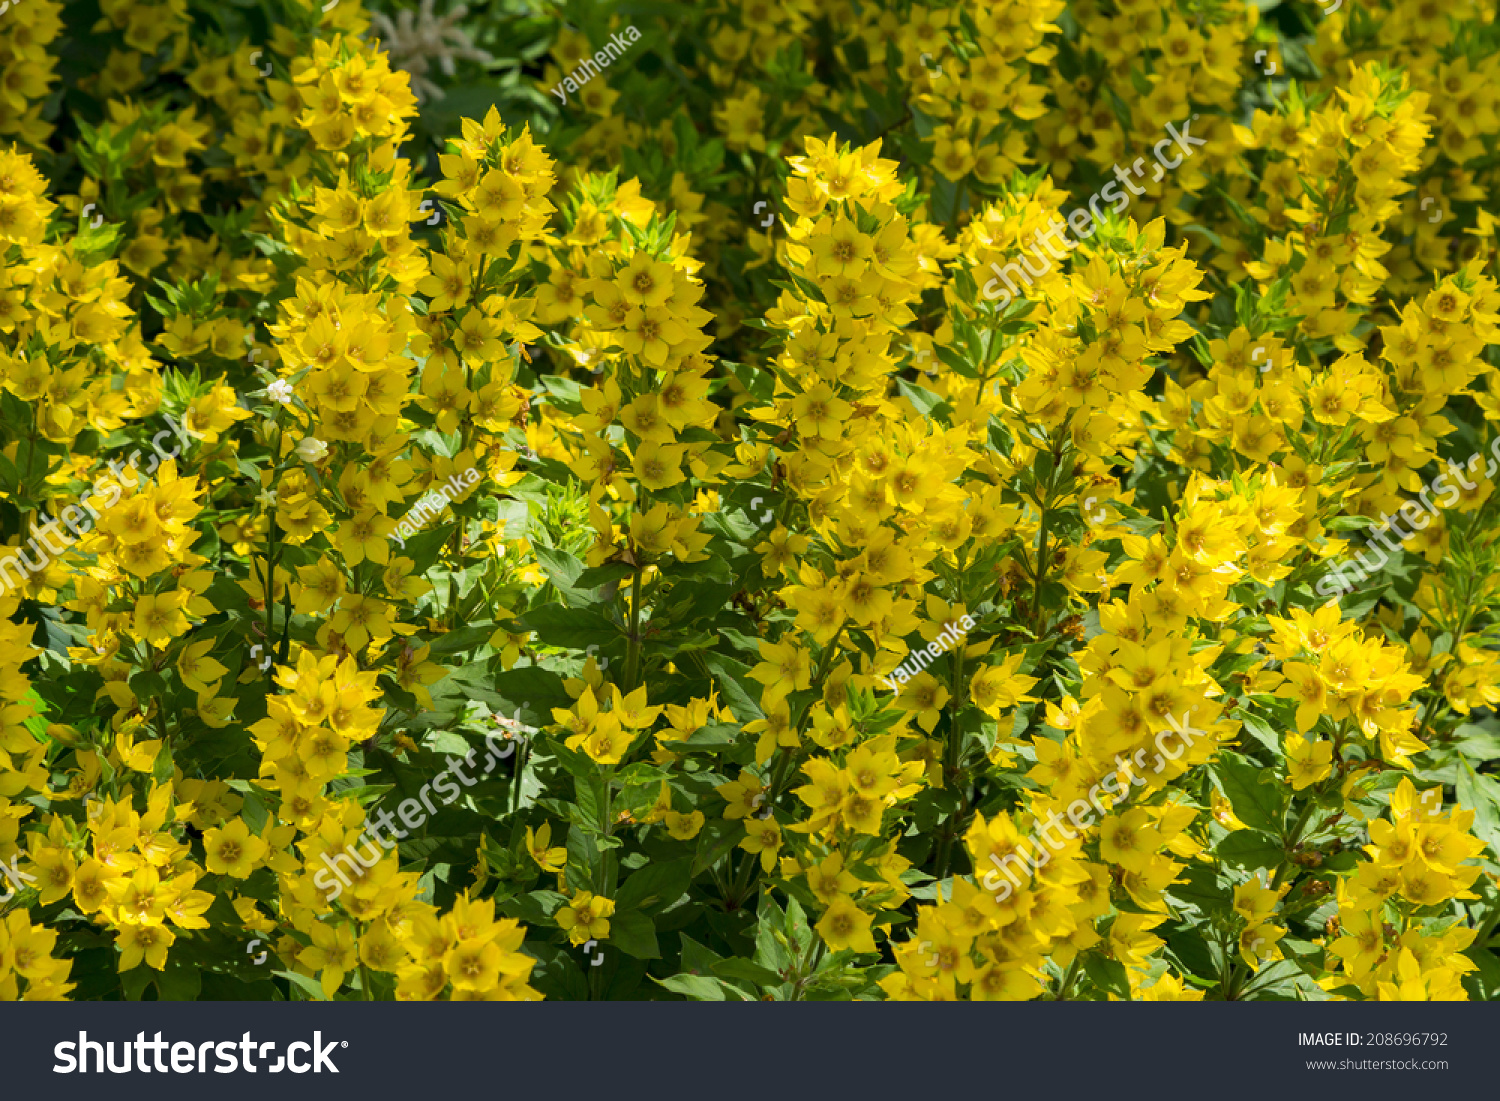 Background Of Yellow Flowers Sunny Day Ez Canvas